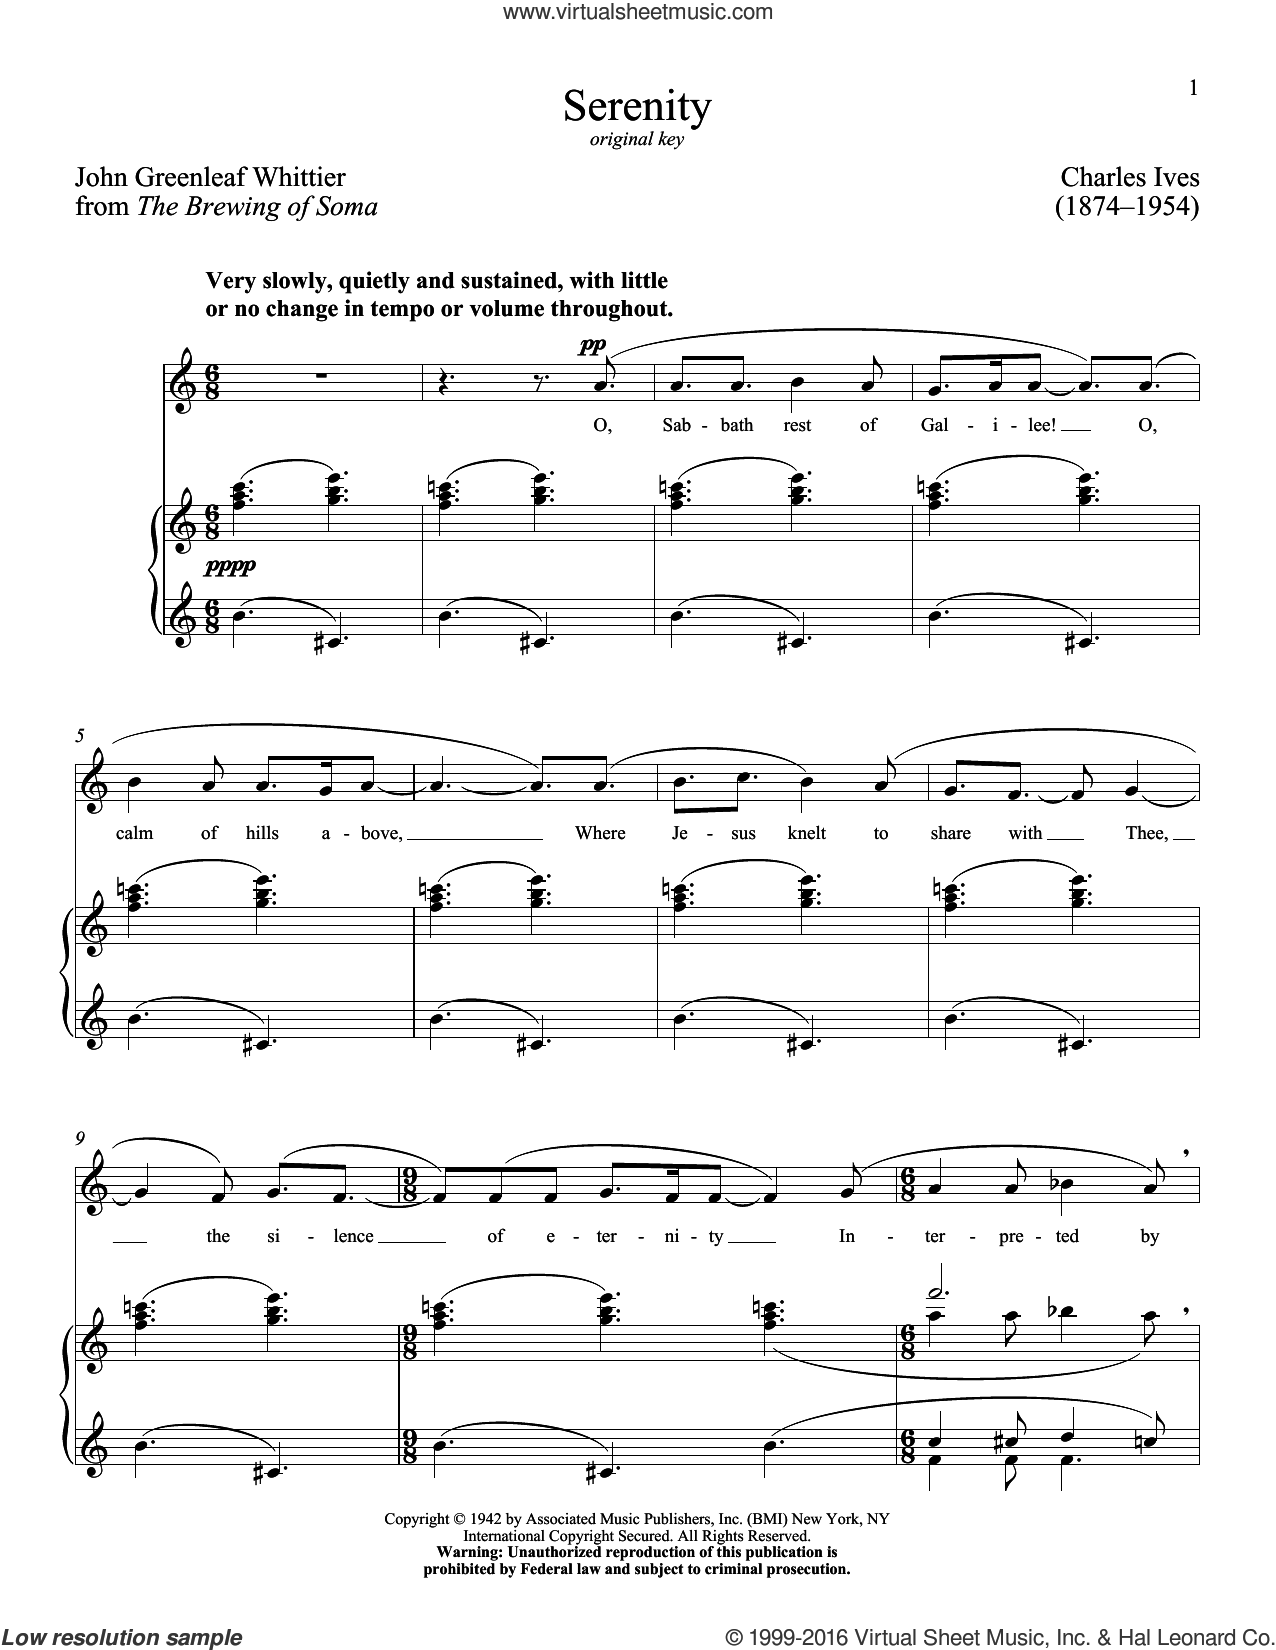 Serenity sheet music for voice and piano (Low ) by John Greenleaf Whittier